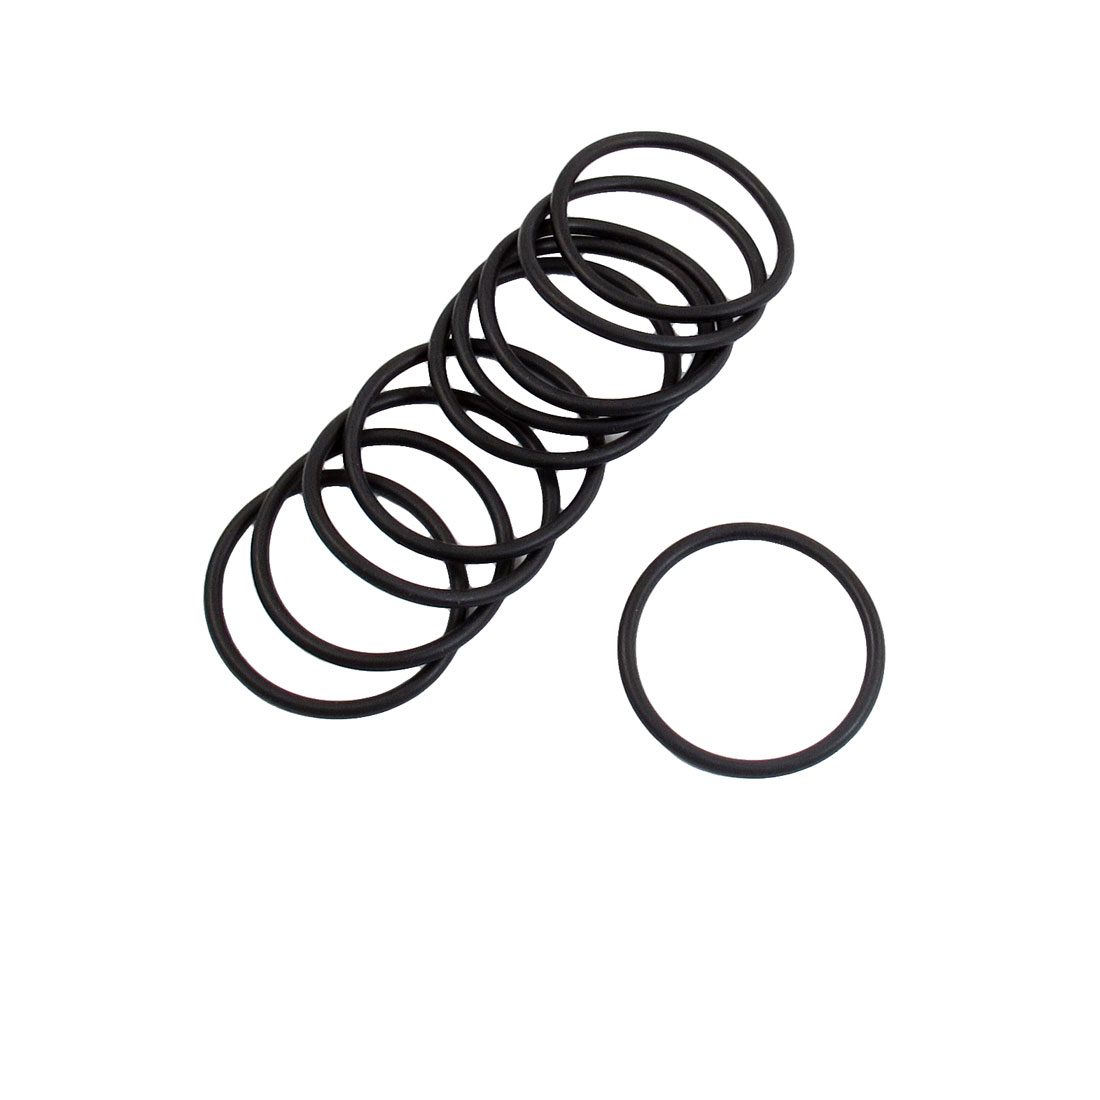 10 Pcs 35mm x 2.4mm Industrial Flexible Rubber O Ring Seal Washer